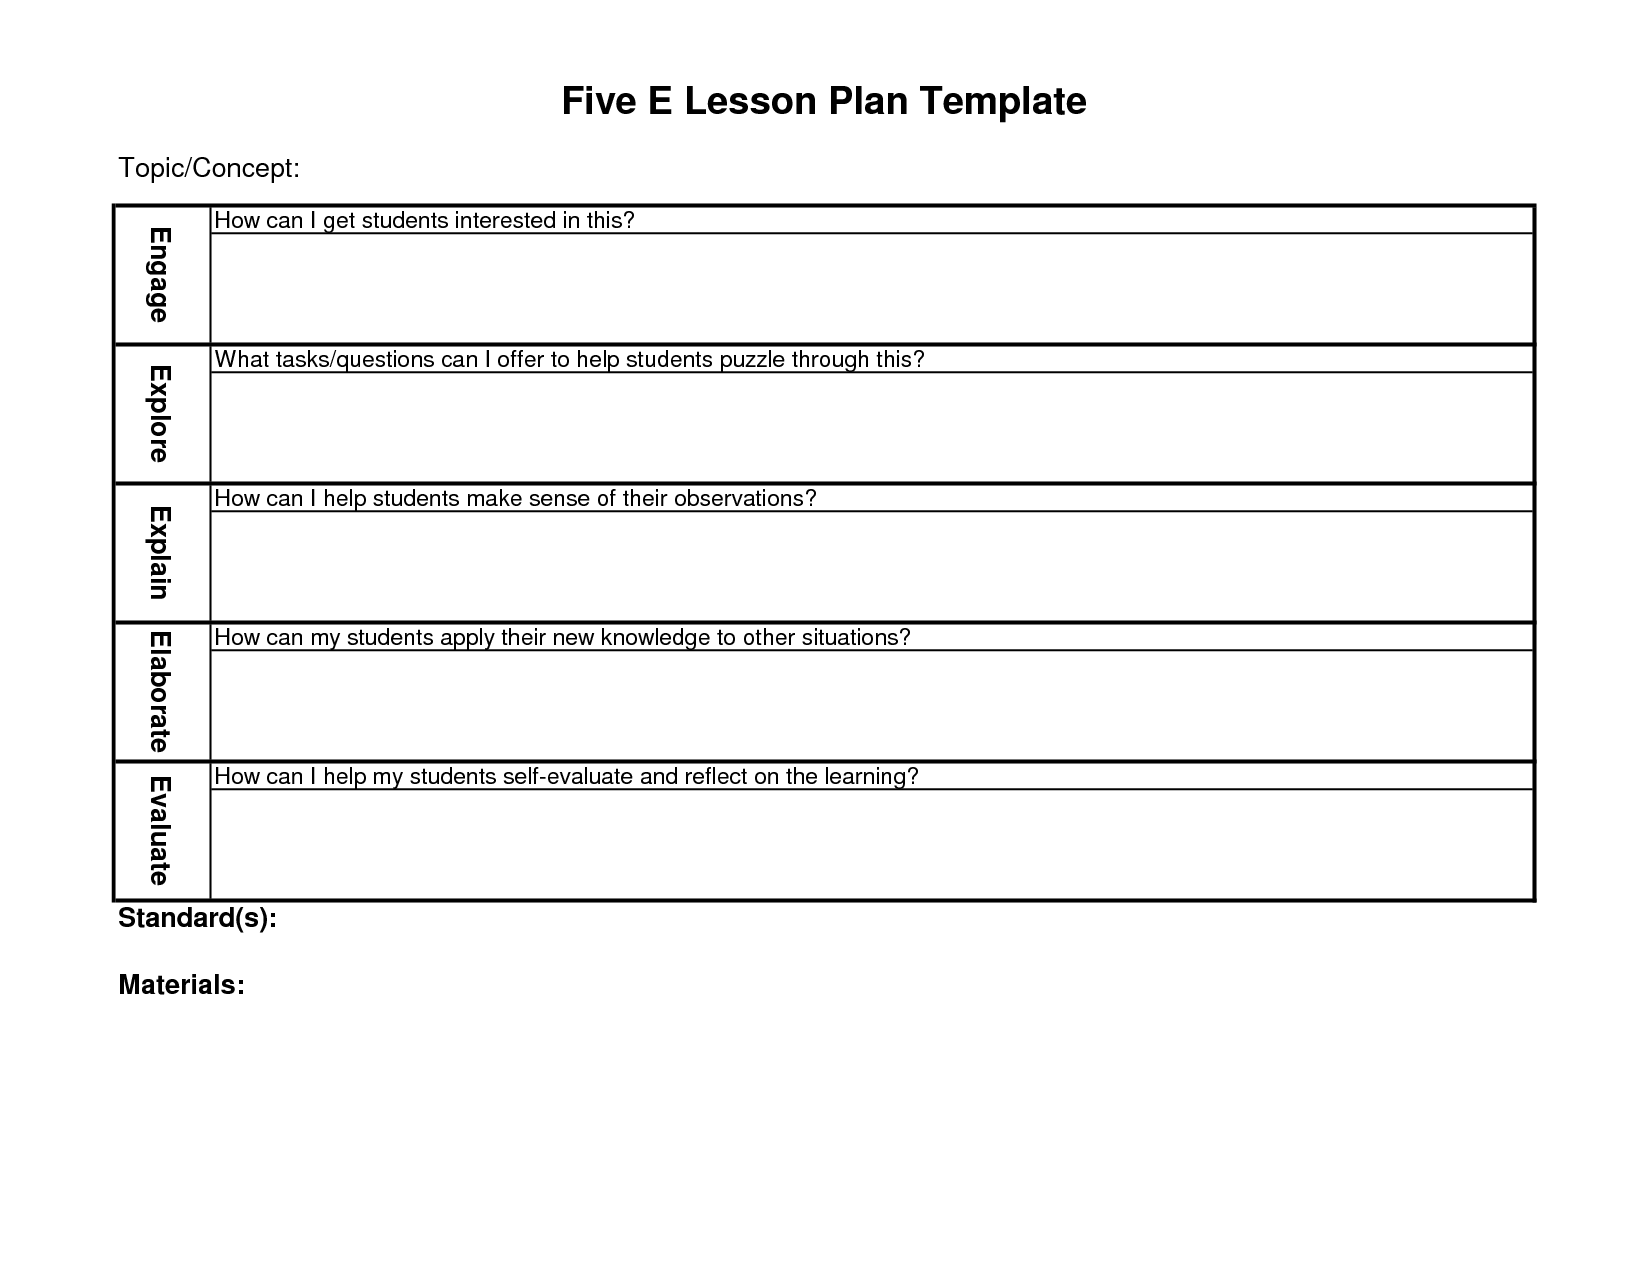 5-e lesson plan template | Blank Lesson Plan Template | School ...